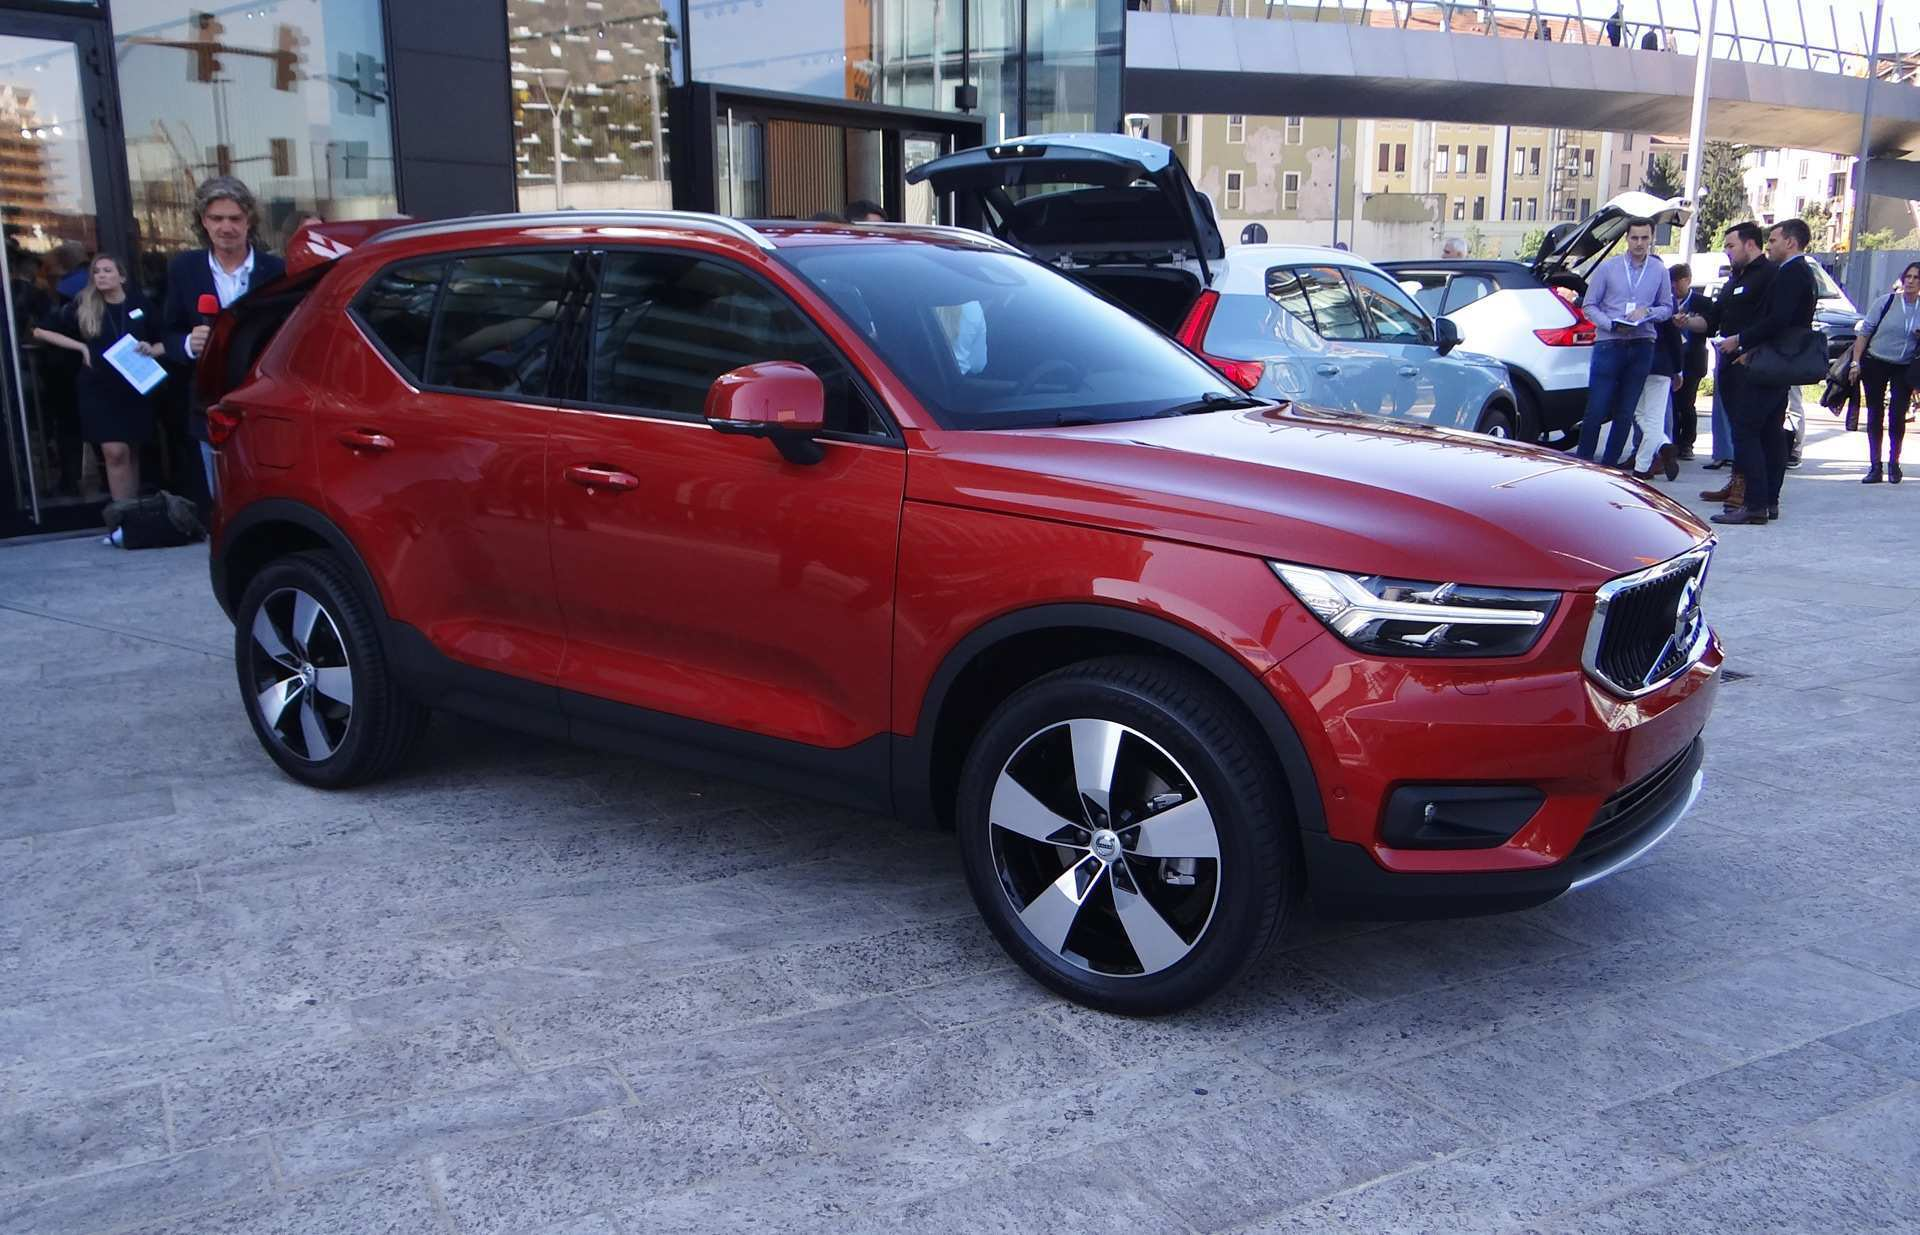 11 Great Volvo All Electric Cars By 2019 Exterior and Interior for Volvo All Electric Cars By 2019